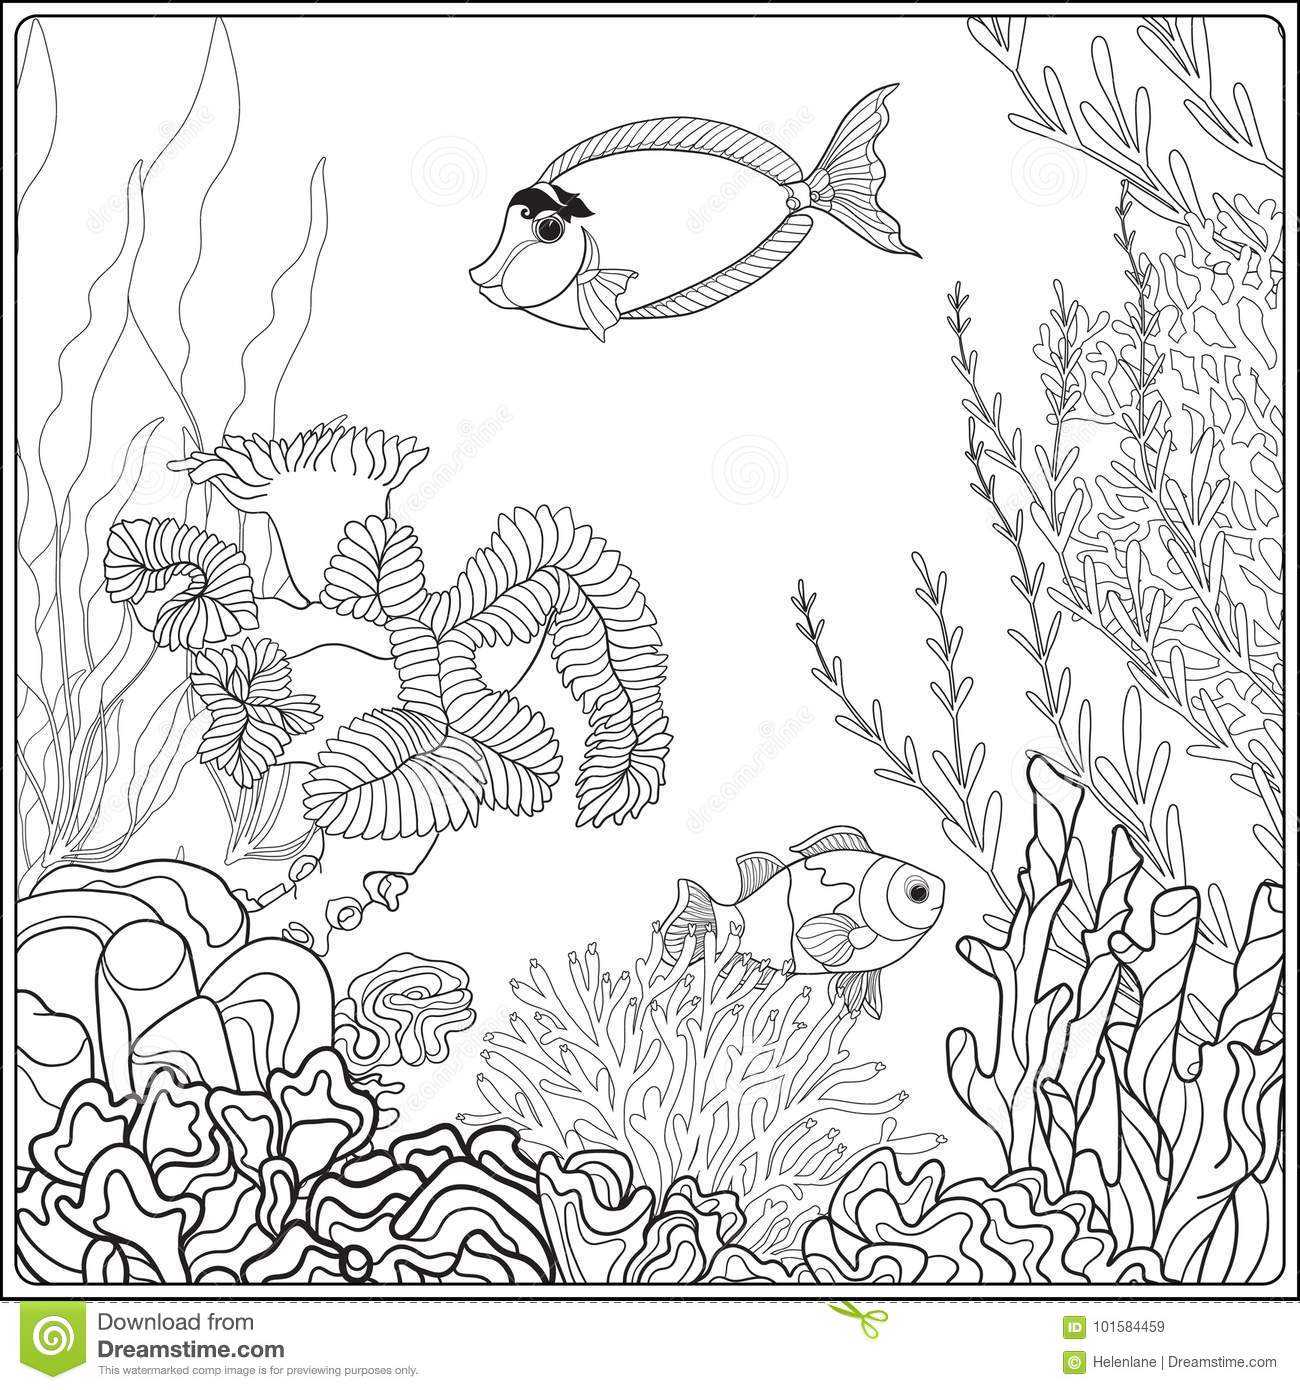 Coloring Page With Underwater World Coral Reef. Corals, Fish And ...